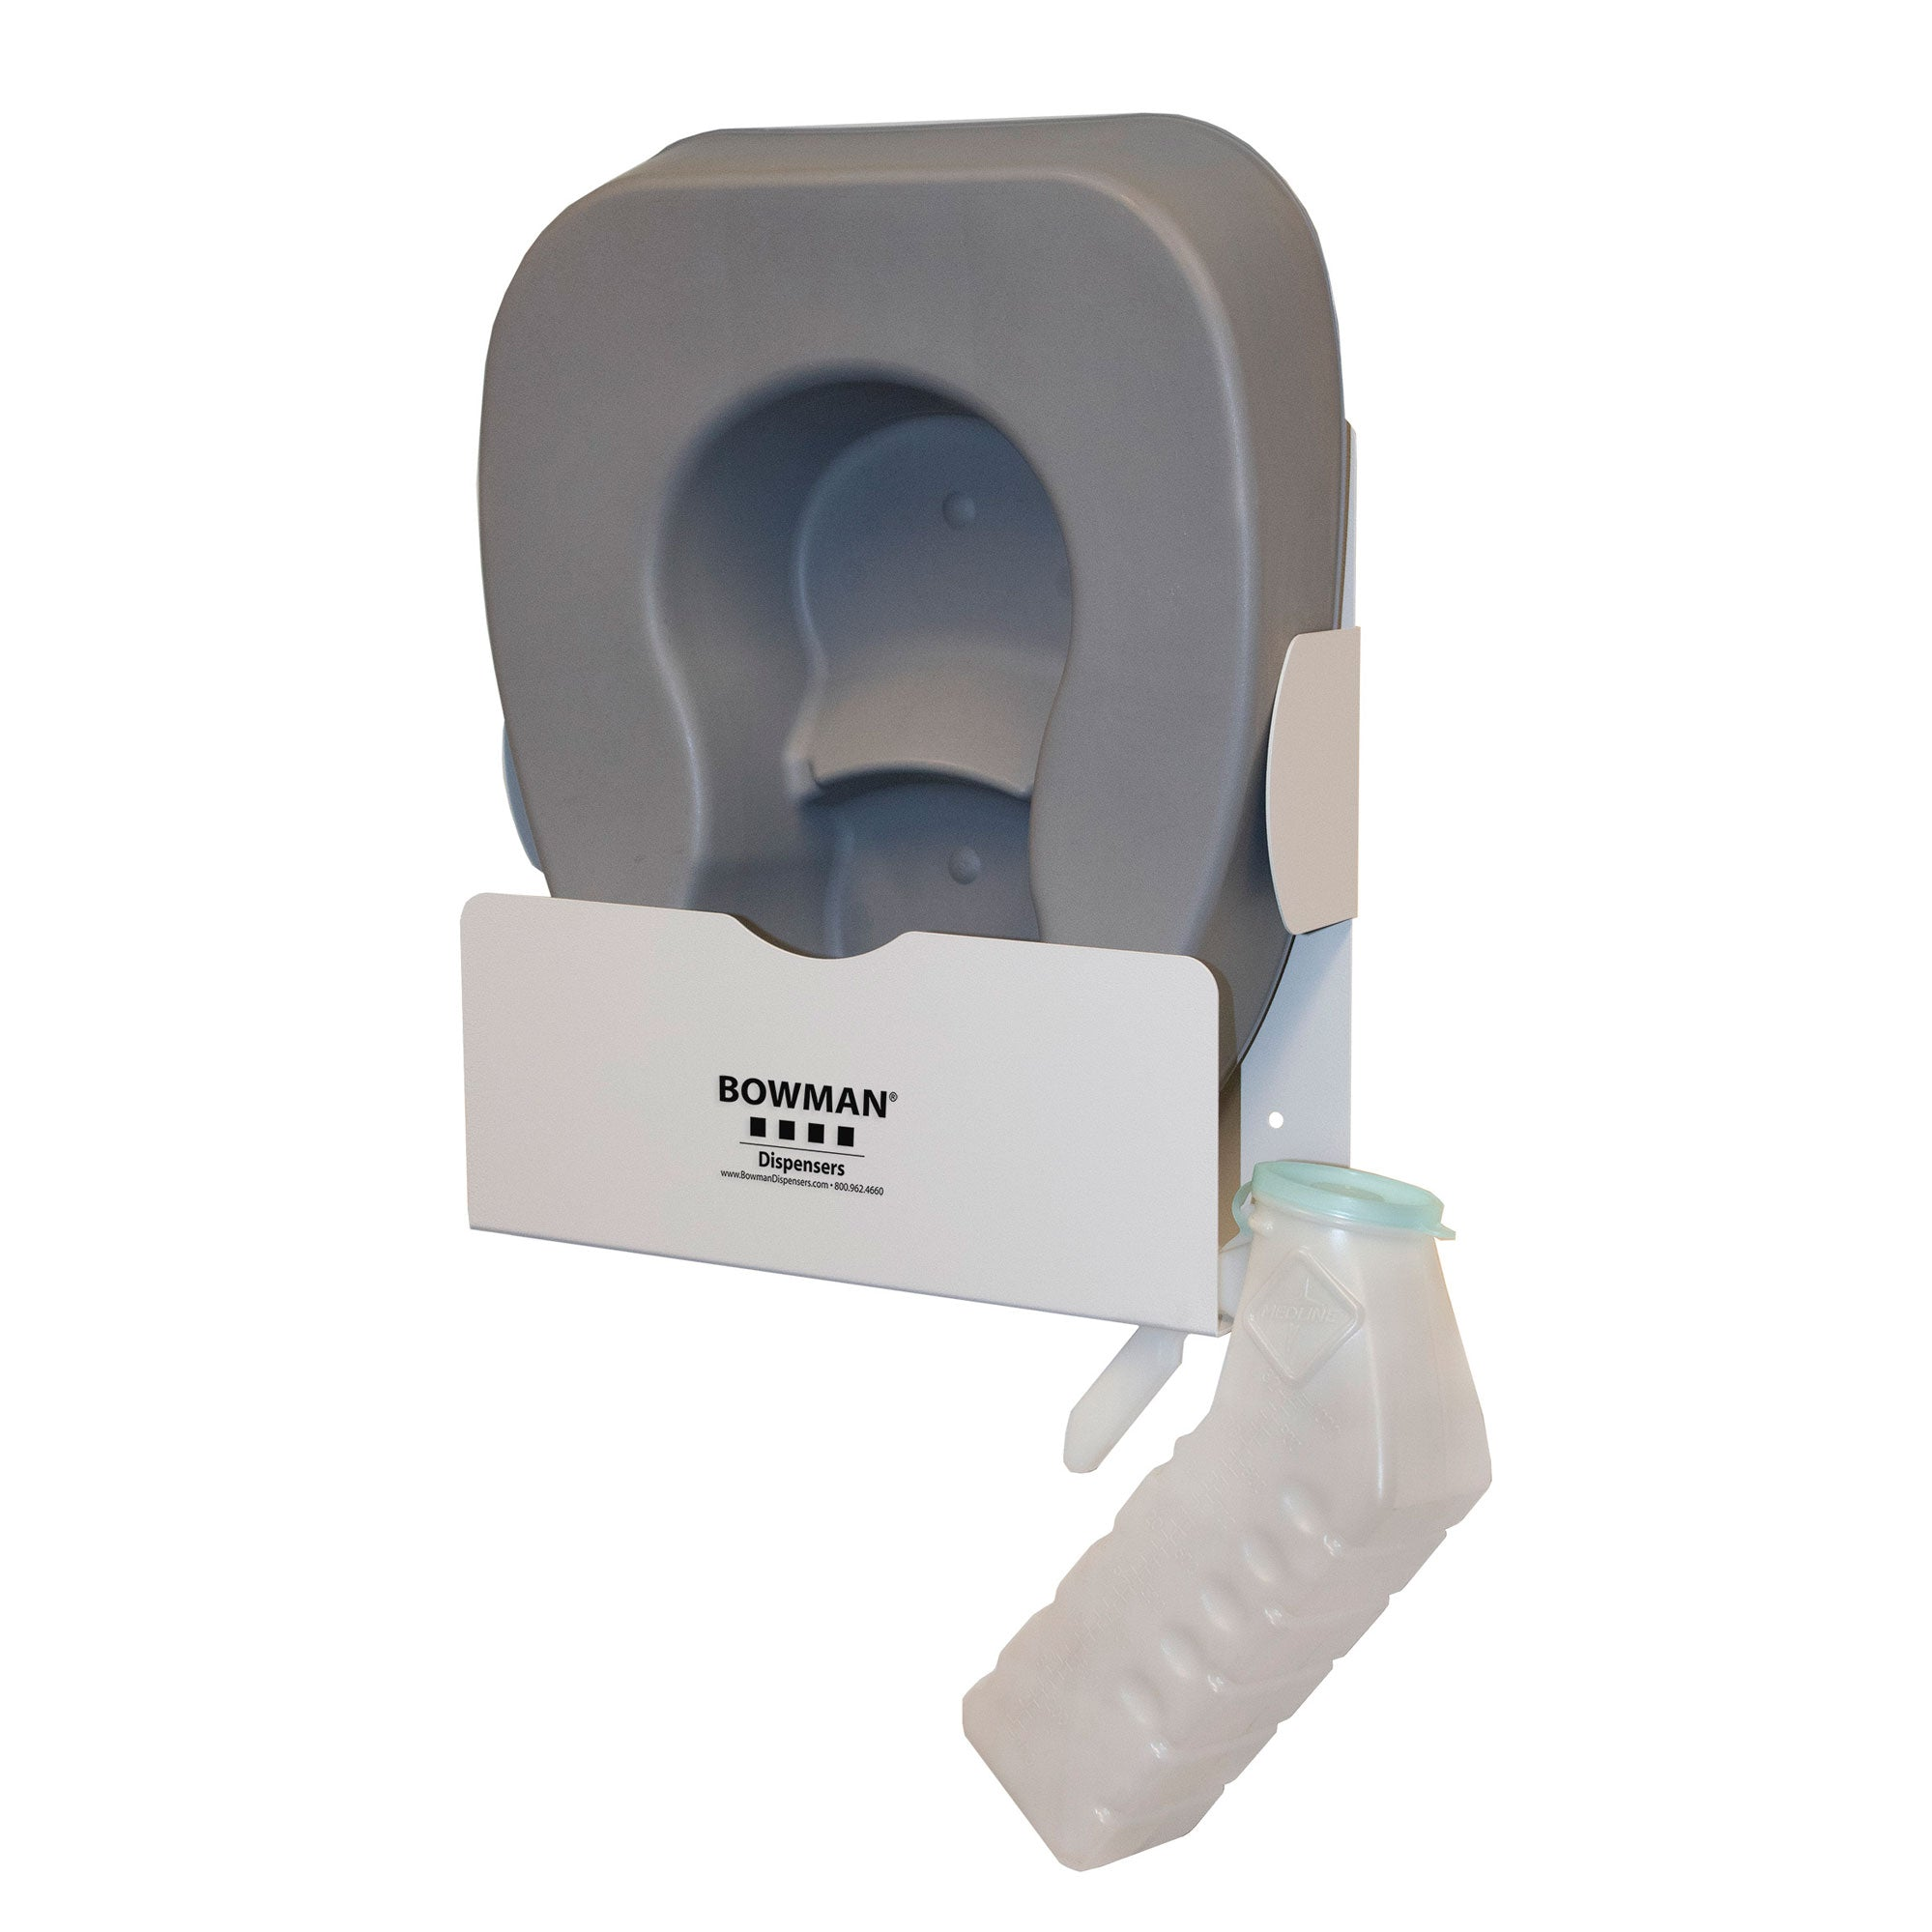 Bowman Bed Pan/Urinal Dispenser